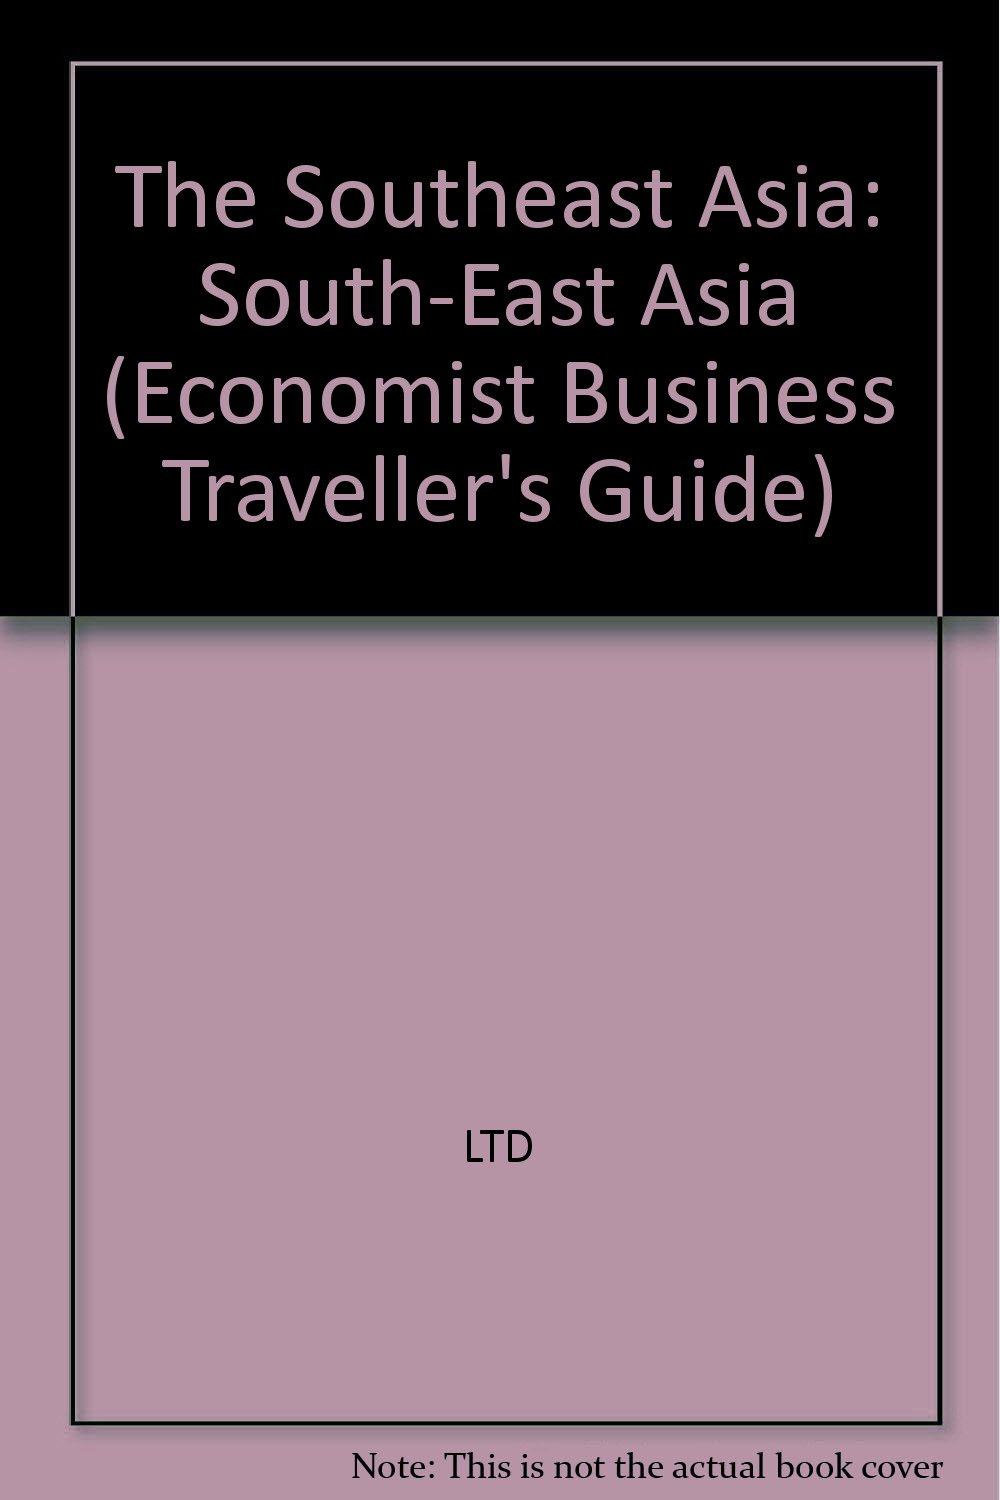 South East Asia (Economist Business Traveller's Guide)